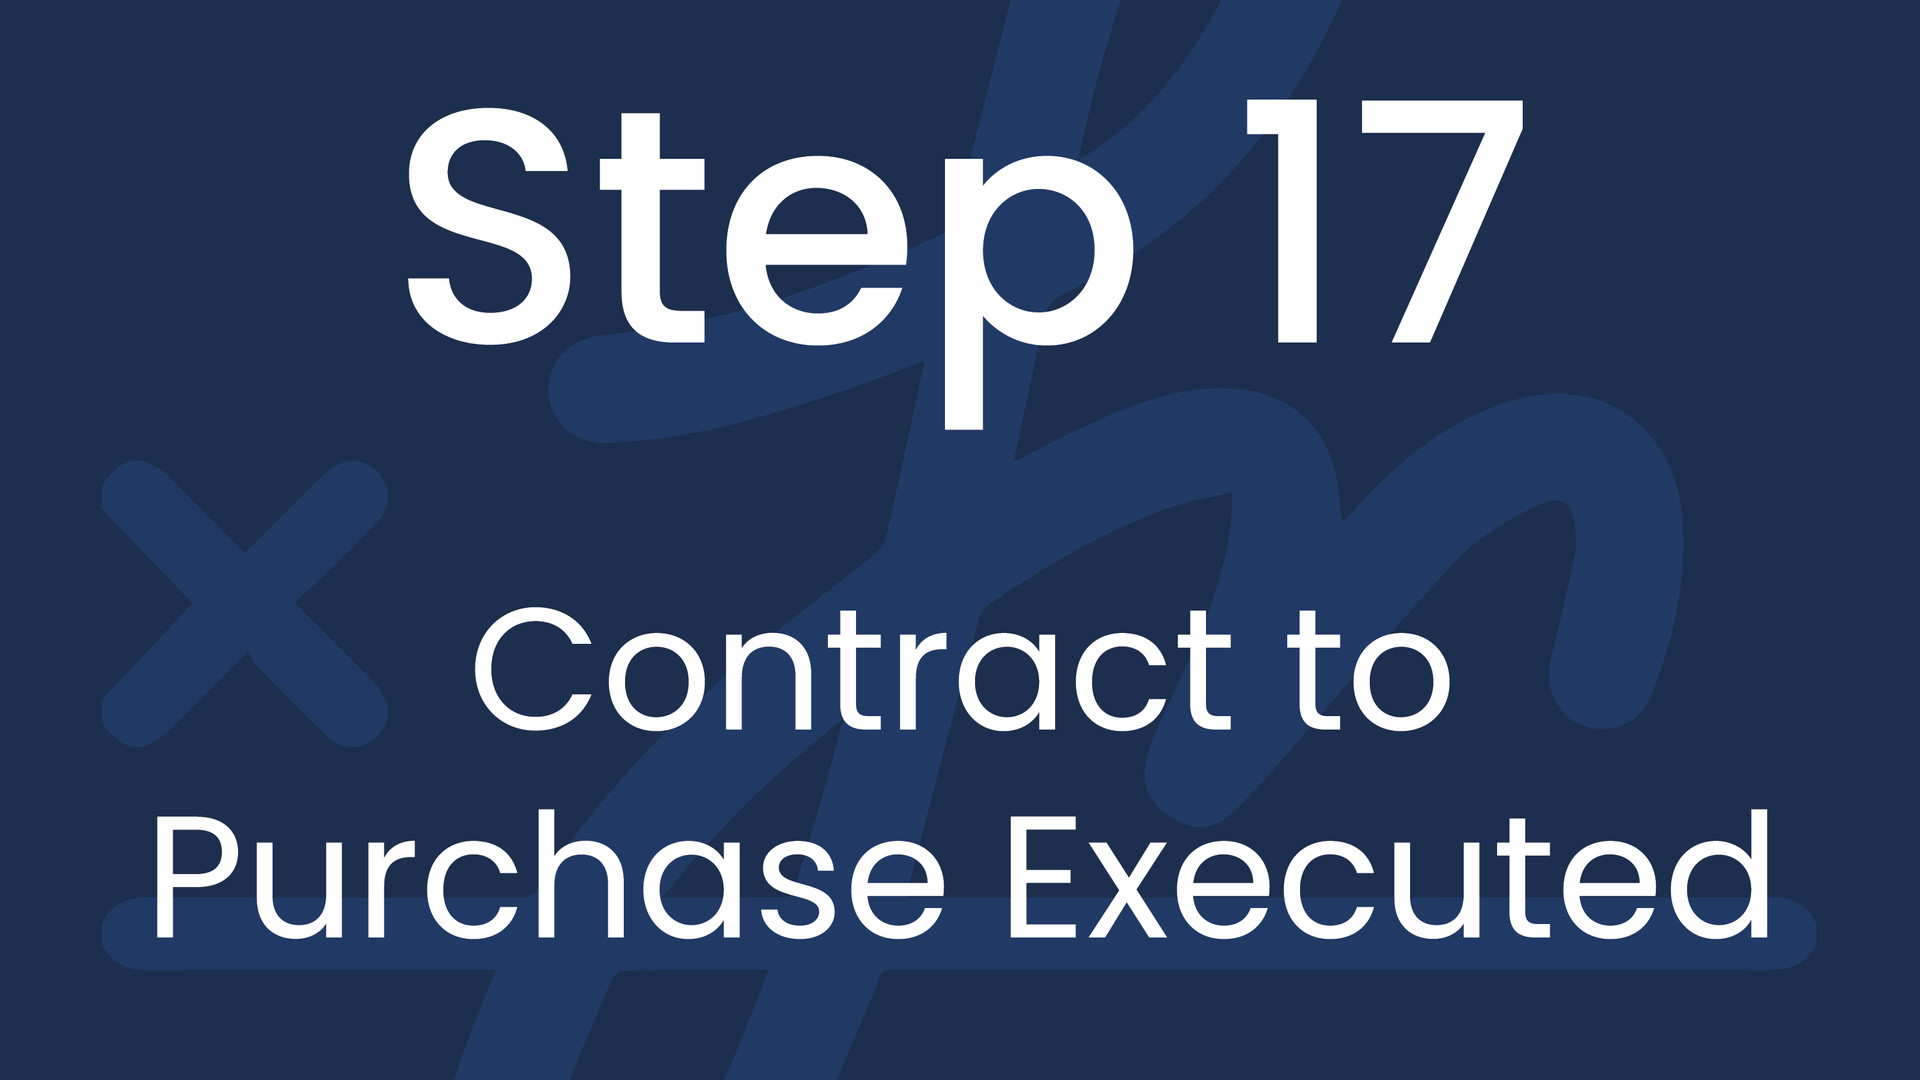 Step 17: Contract to Purchase Executed